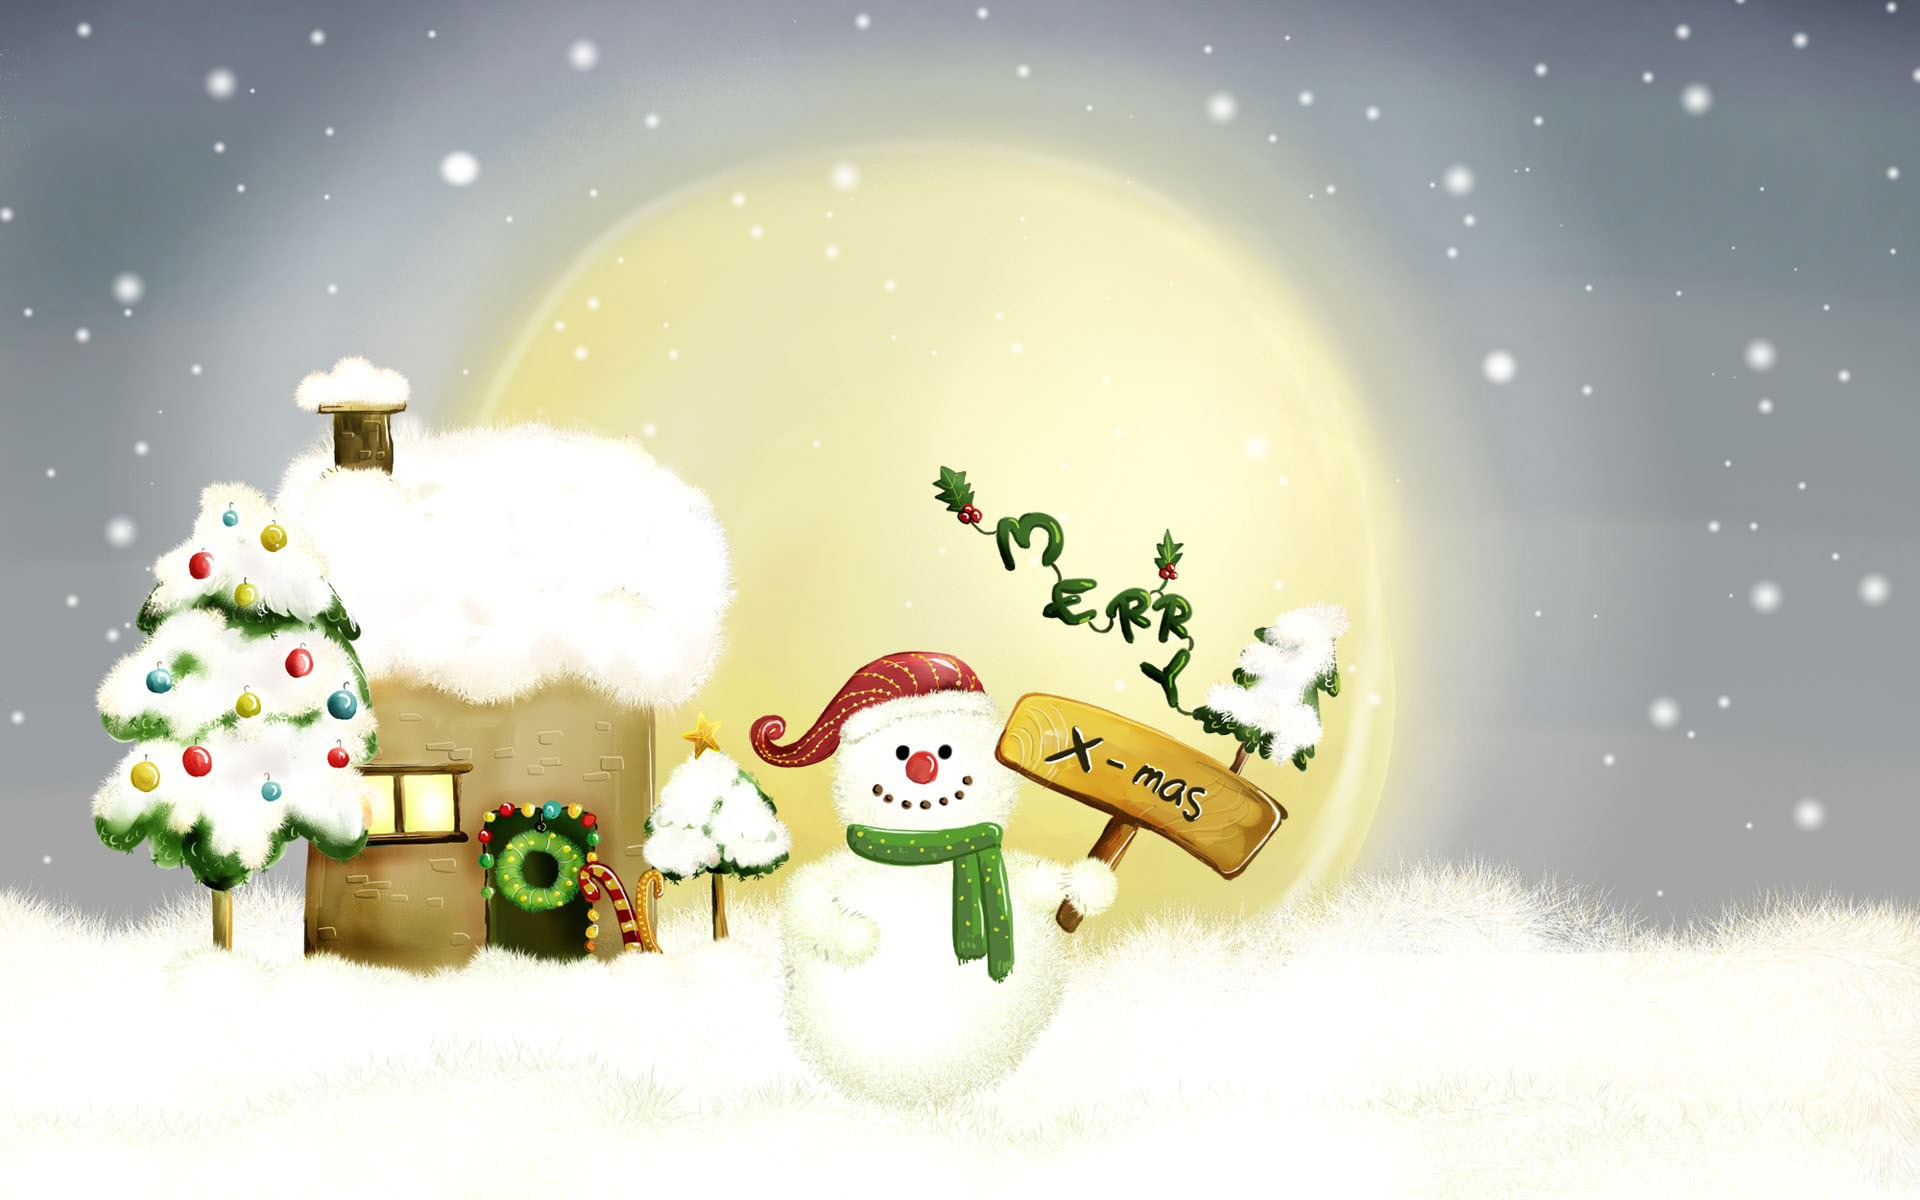 Christmas Wallpaper Free Widescreen Page 1